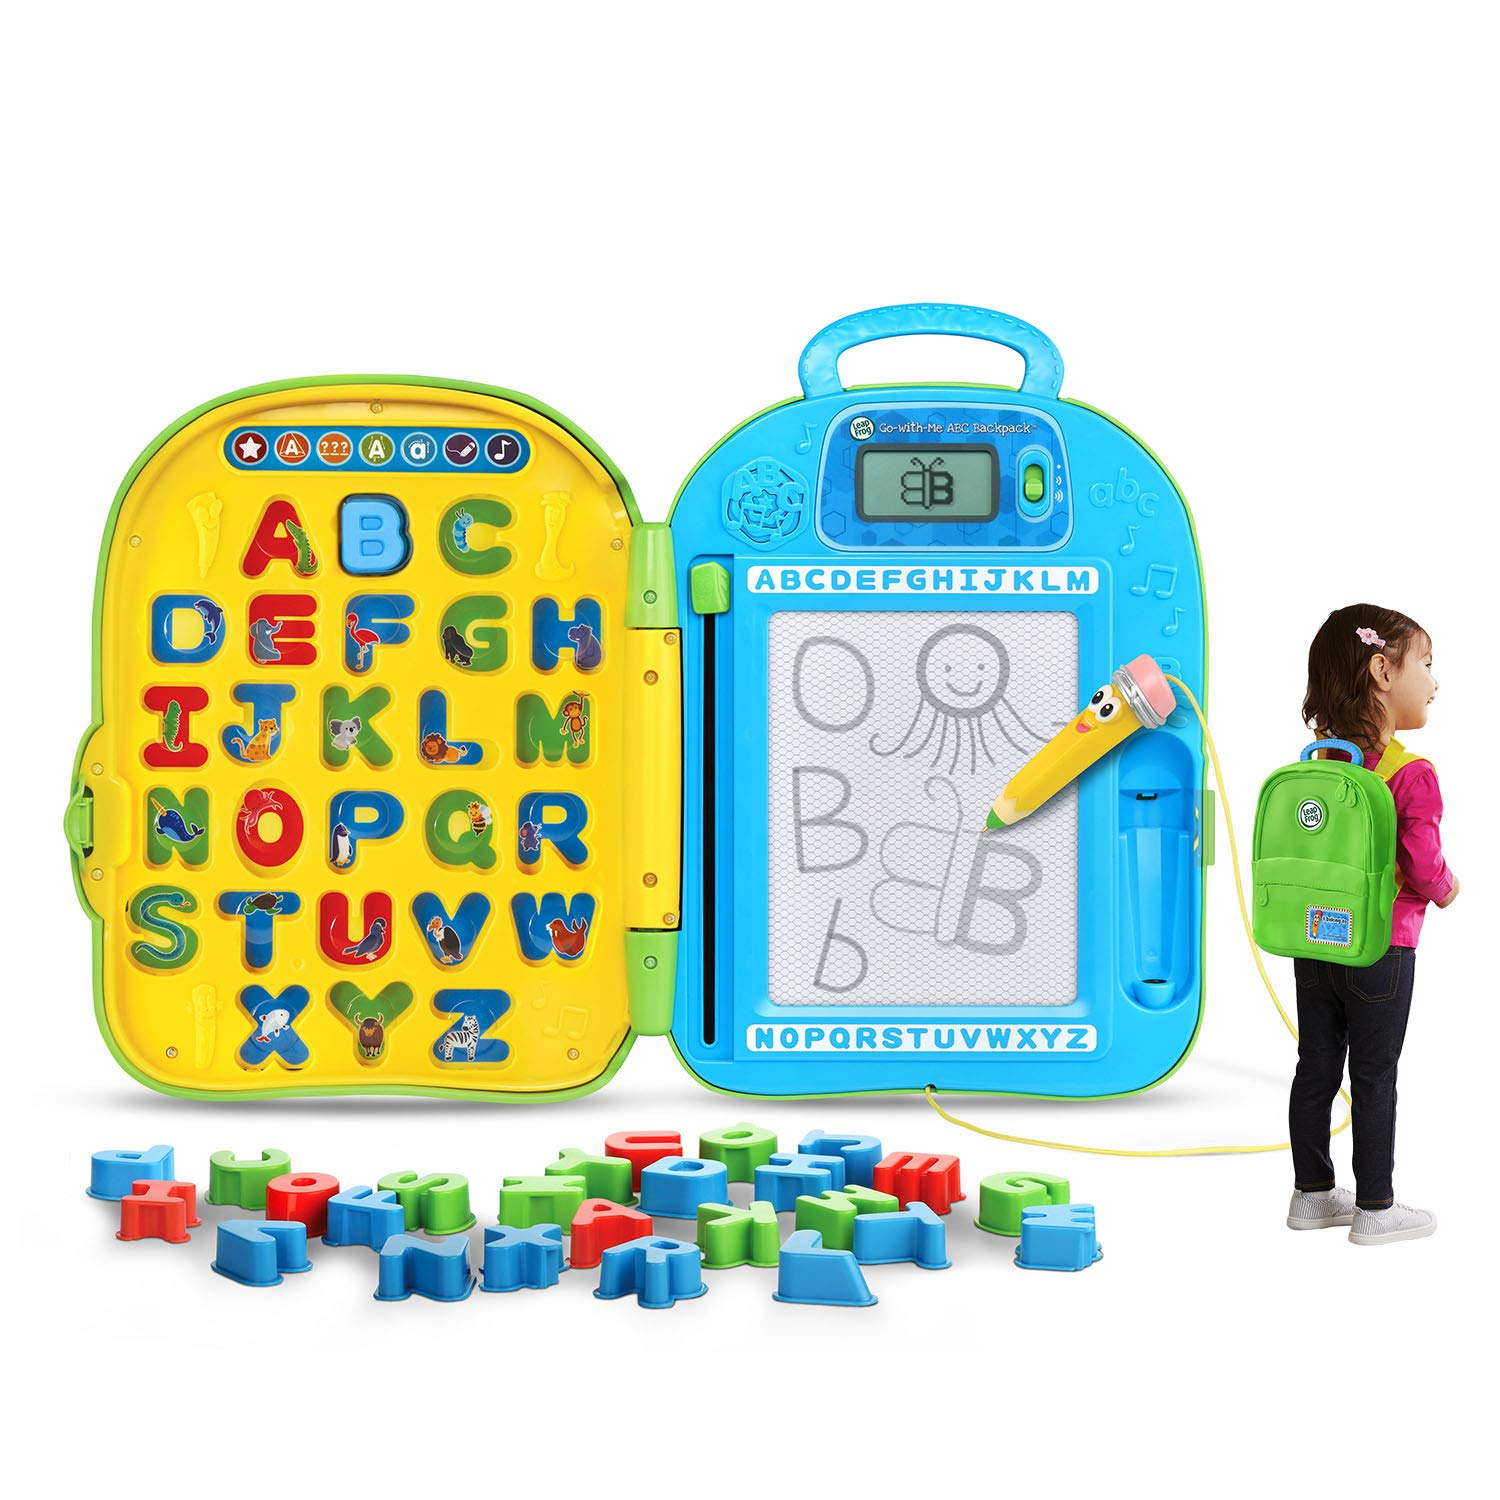 LeapFrog Go-with-Me ABC Backpack (Frustration Free Packaging) by LeapFrog